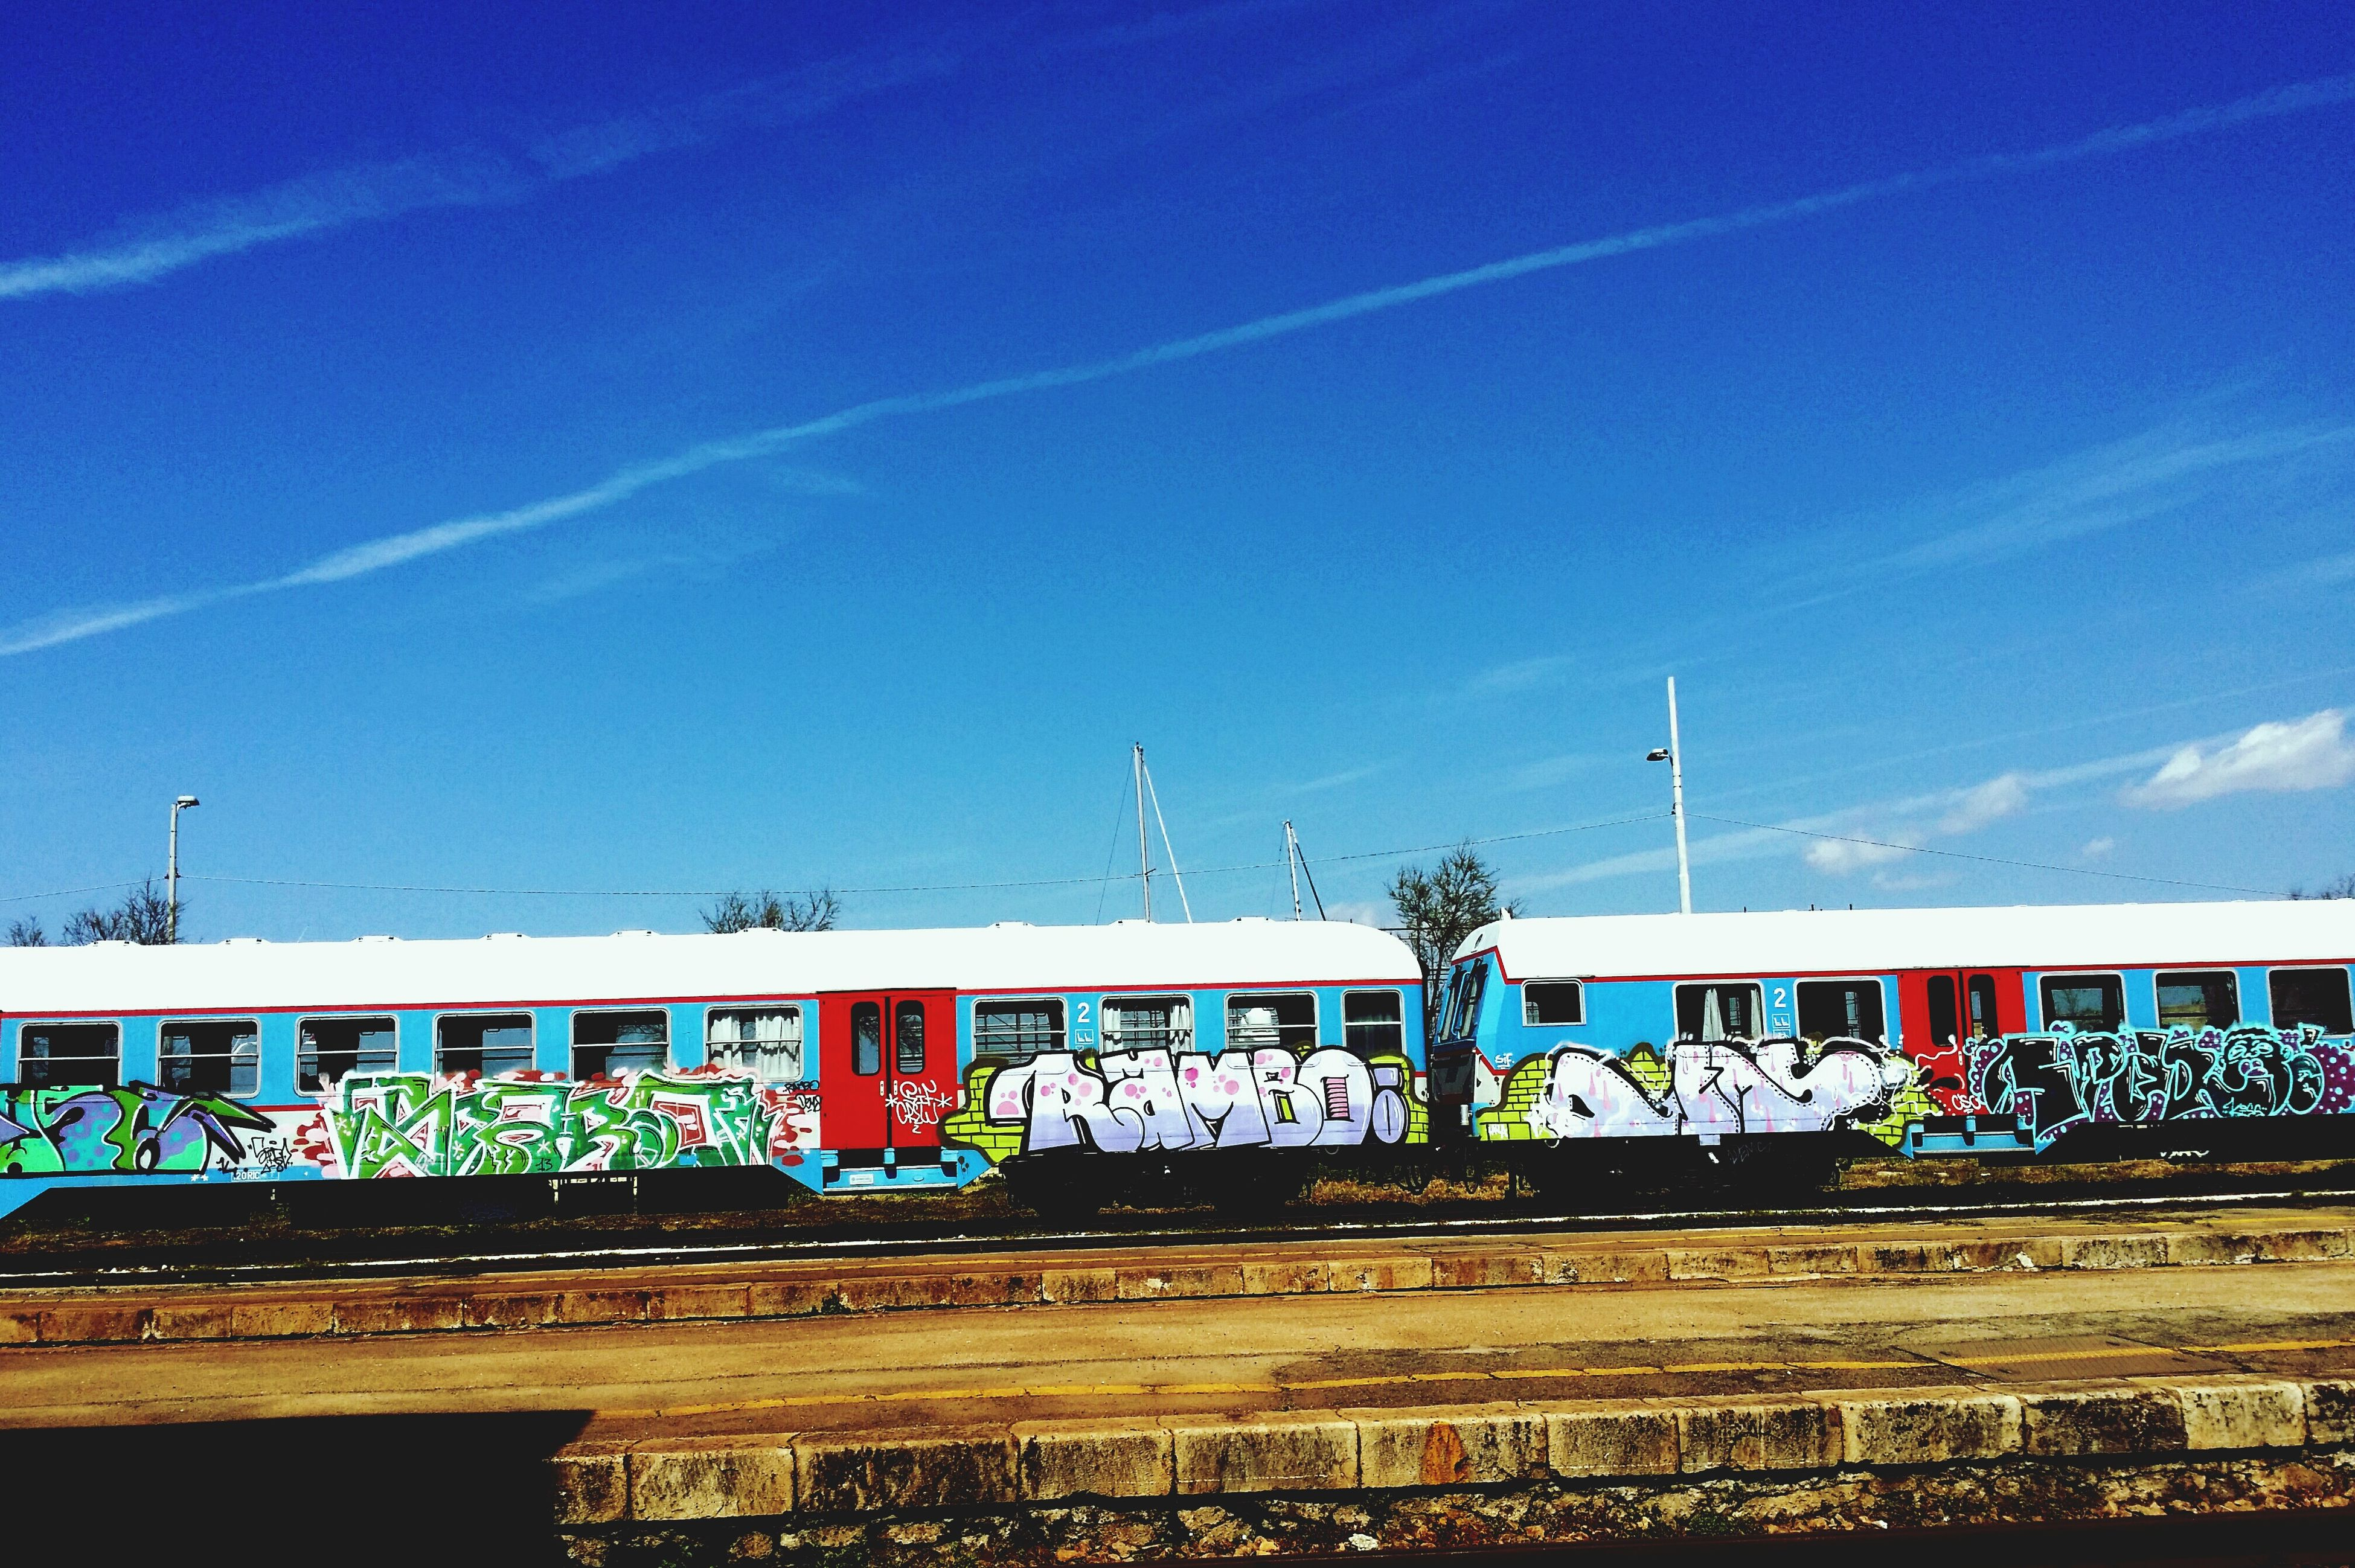 blue, sky, built structure, architecture, text, transportation, building exterior, graffiti, western script, railing, outdoors, day, communication, no people, cloud - sky, multi colored, cloud, low angle view, art, tree